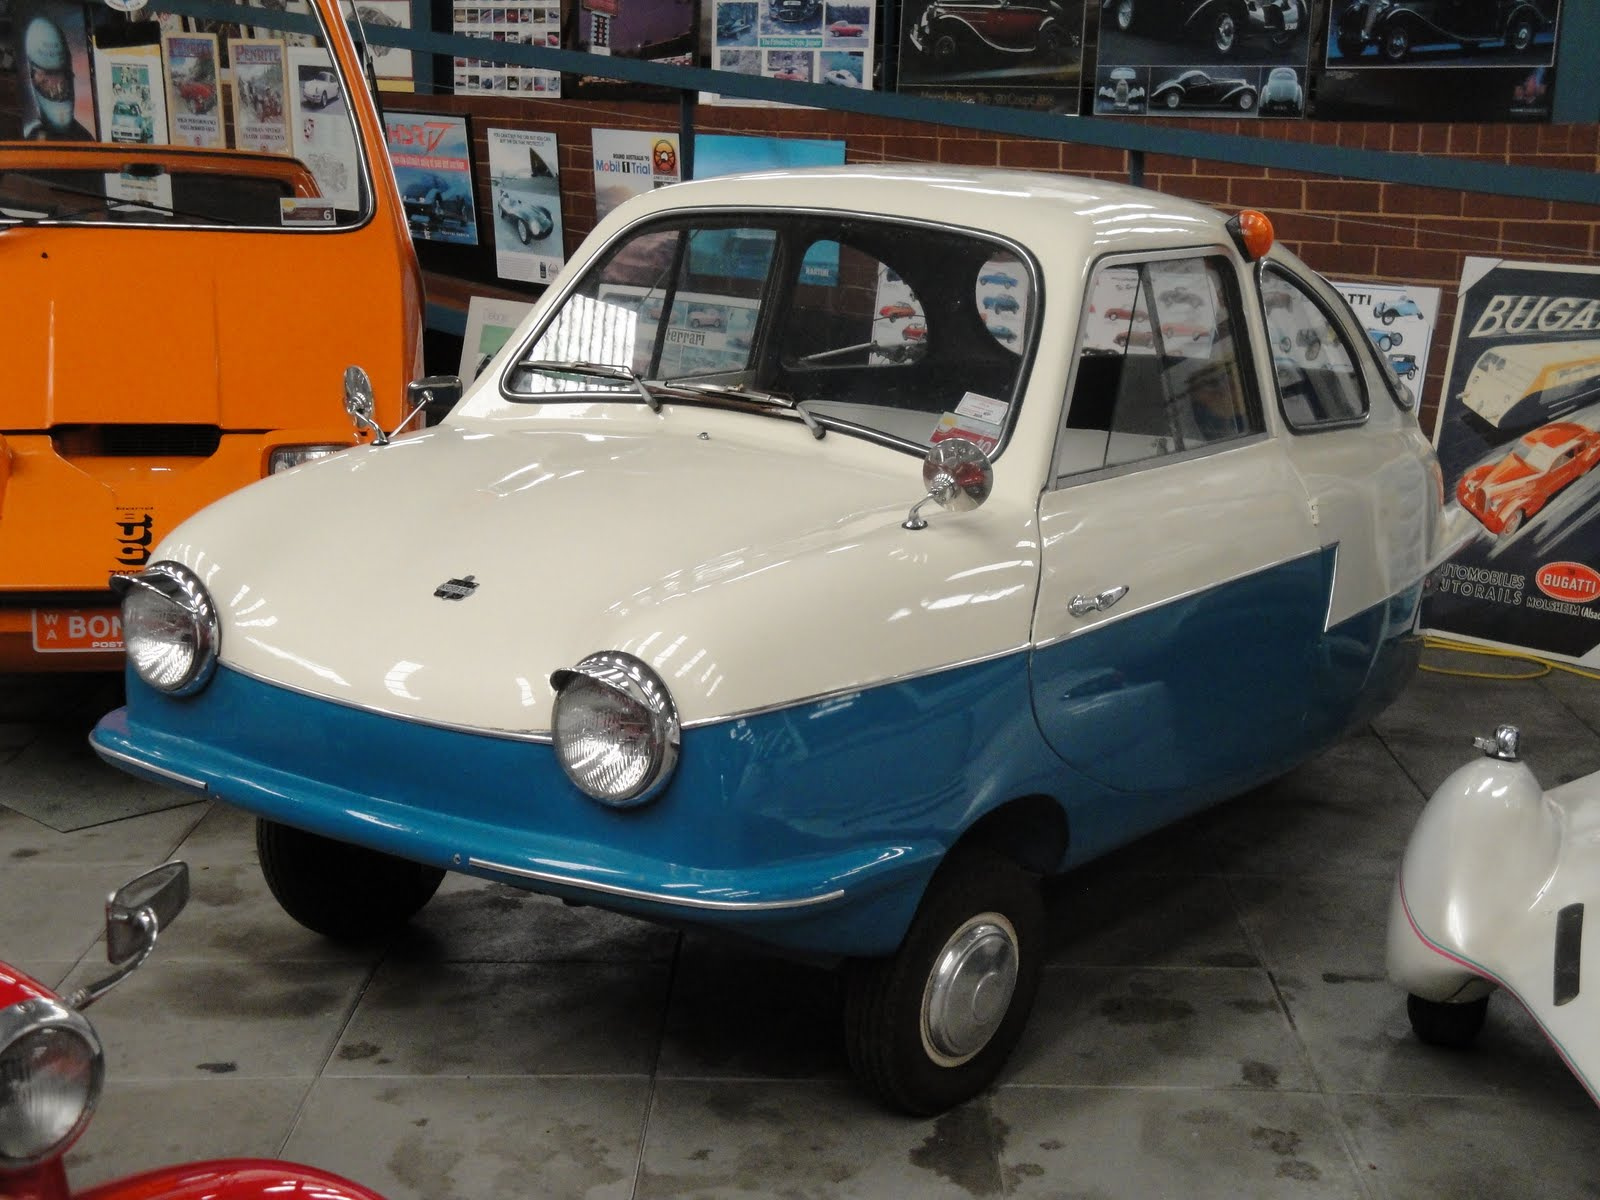 Best Cars And Fashion Art Microcar Collection At Whiteman Park